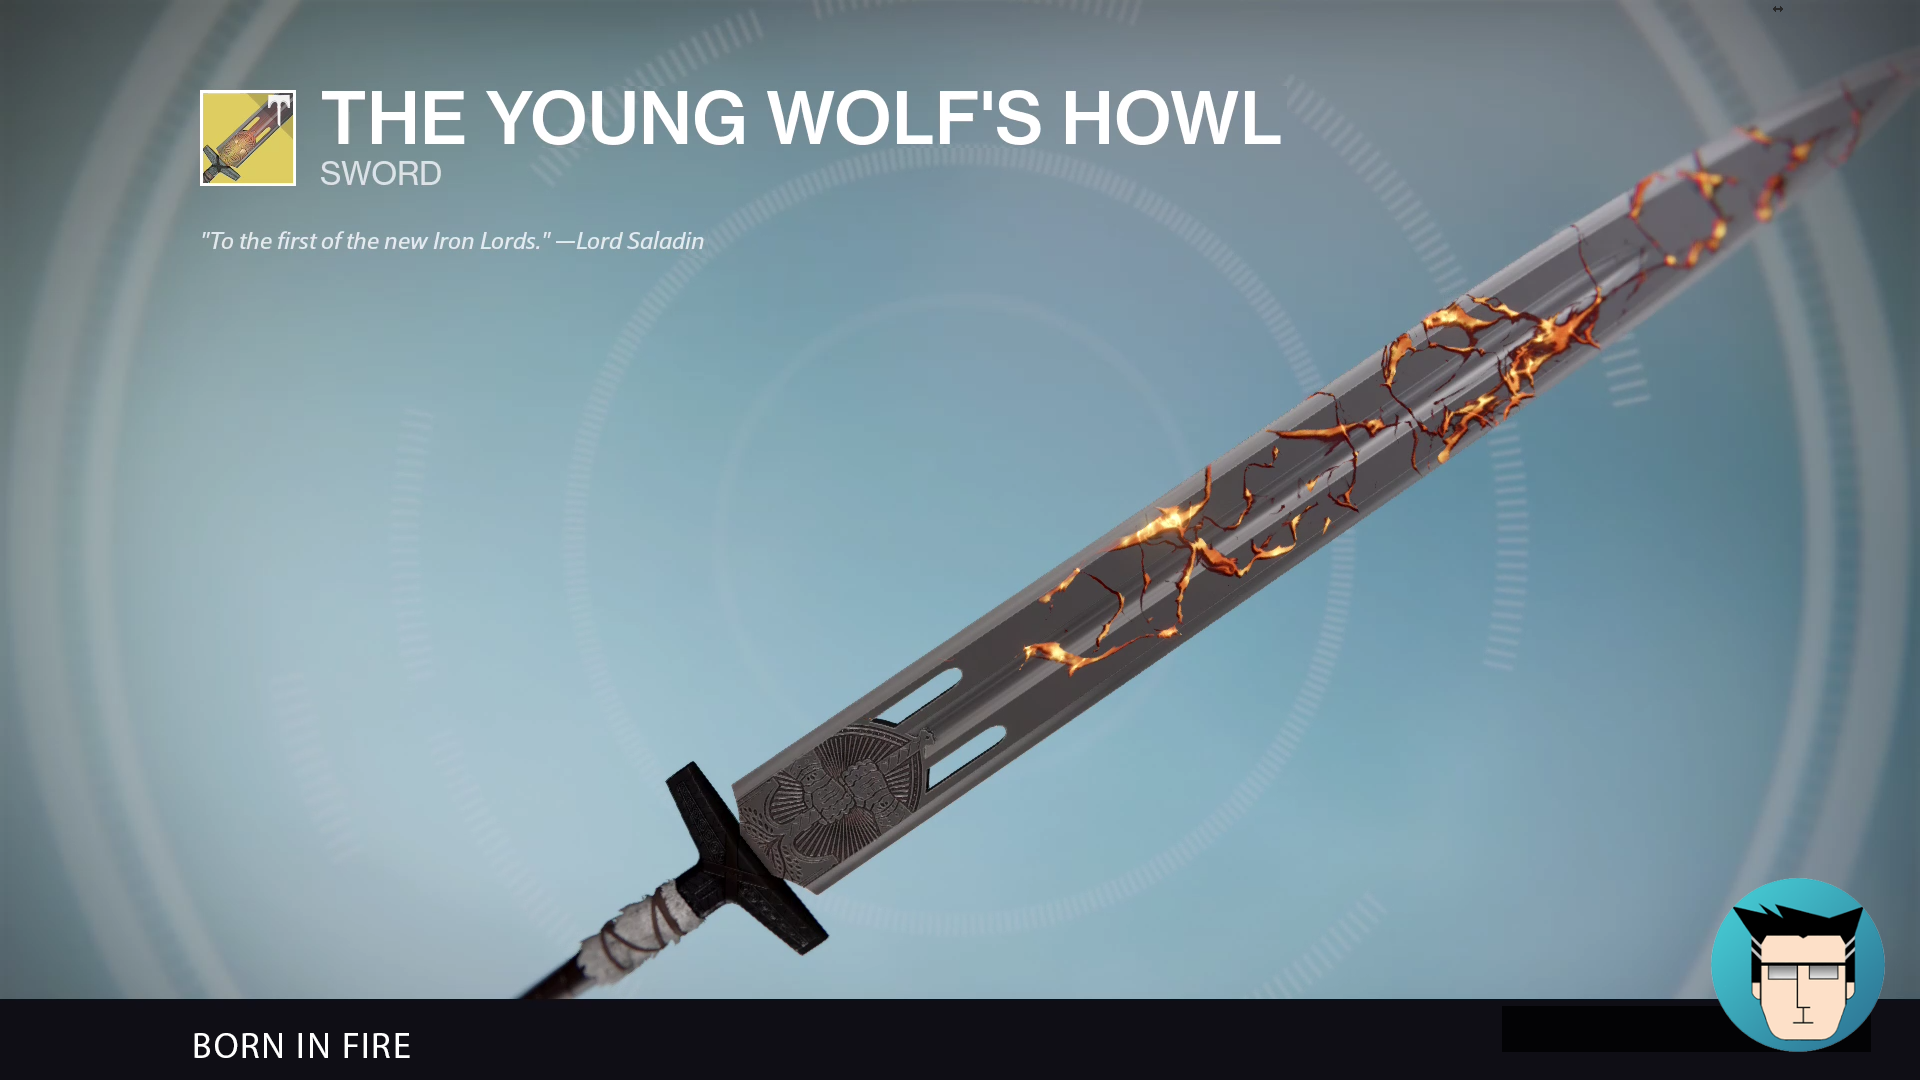 THE YOUNG WOLF'S HOWL | BORN IN FIRE